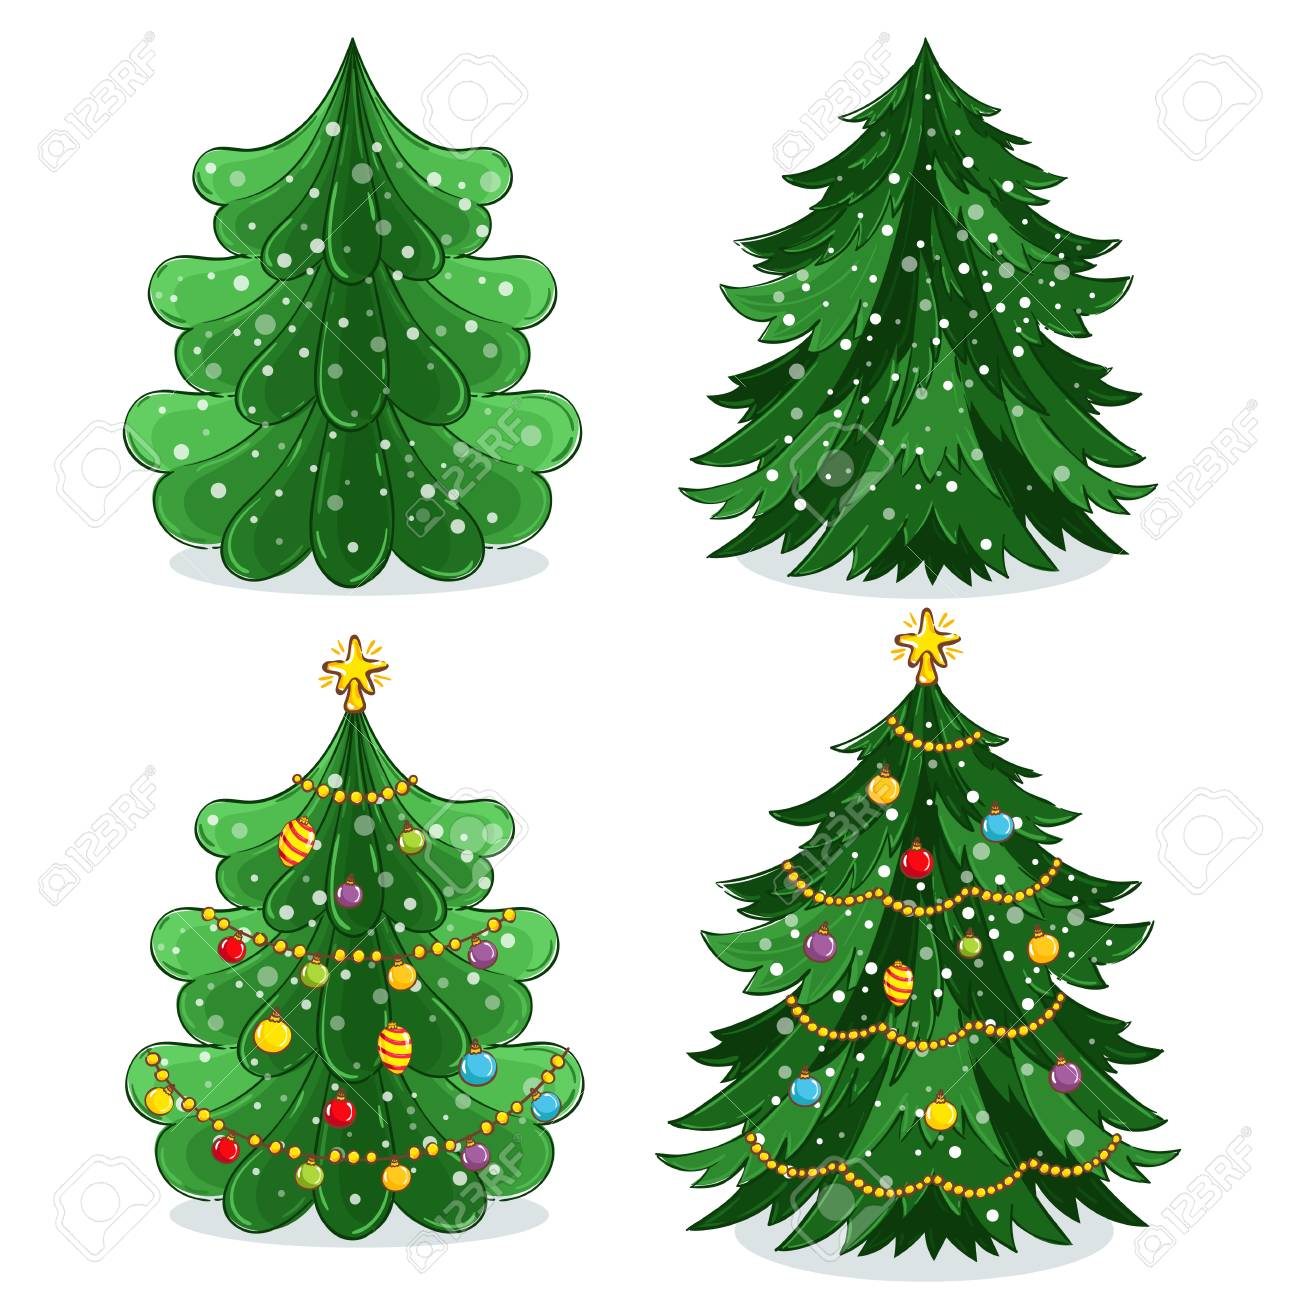 Green Christmas tree with light decoration, garland and toys...